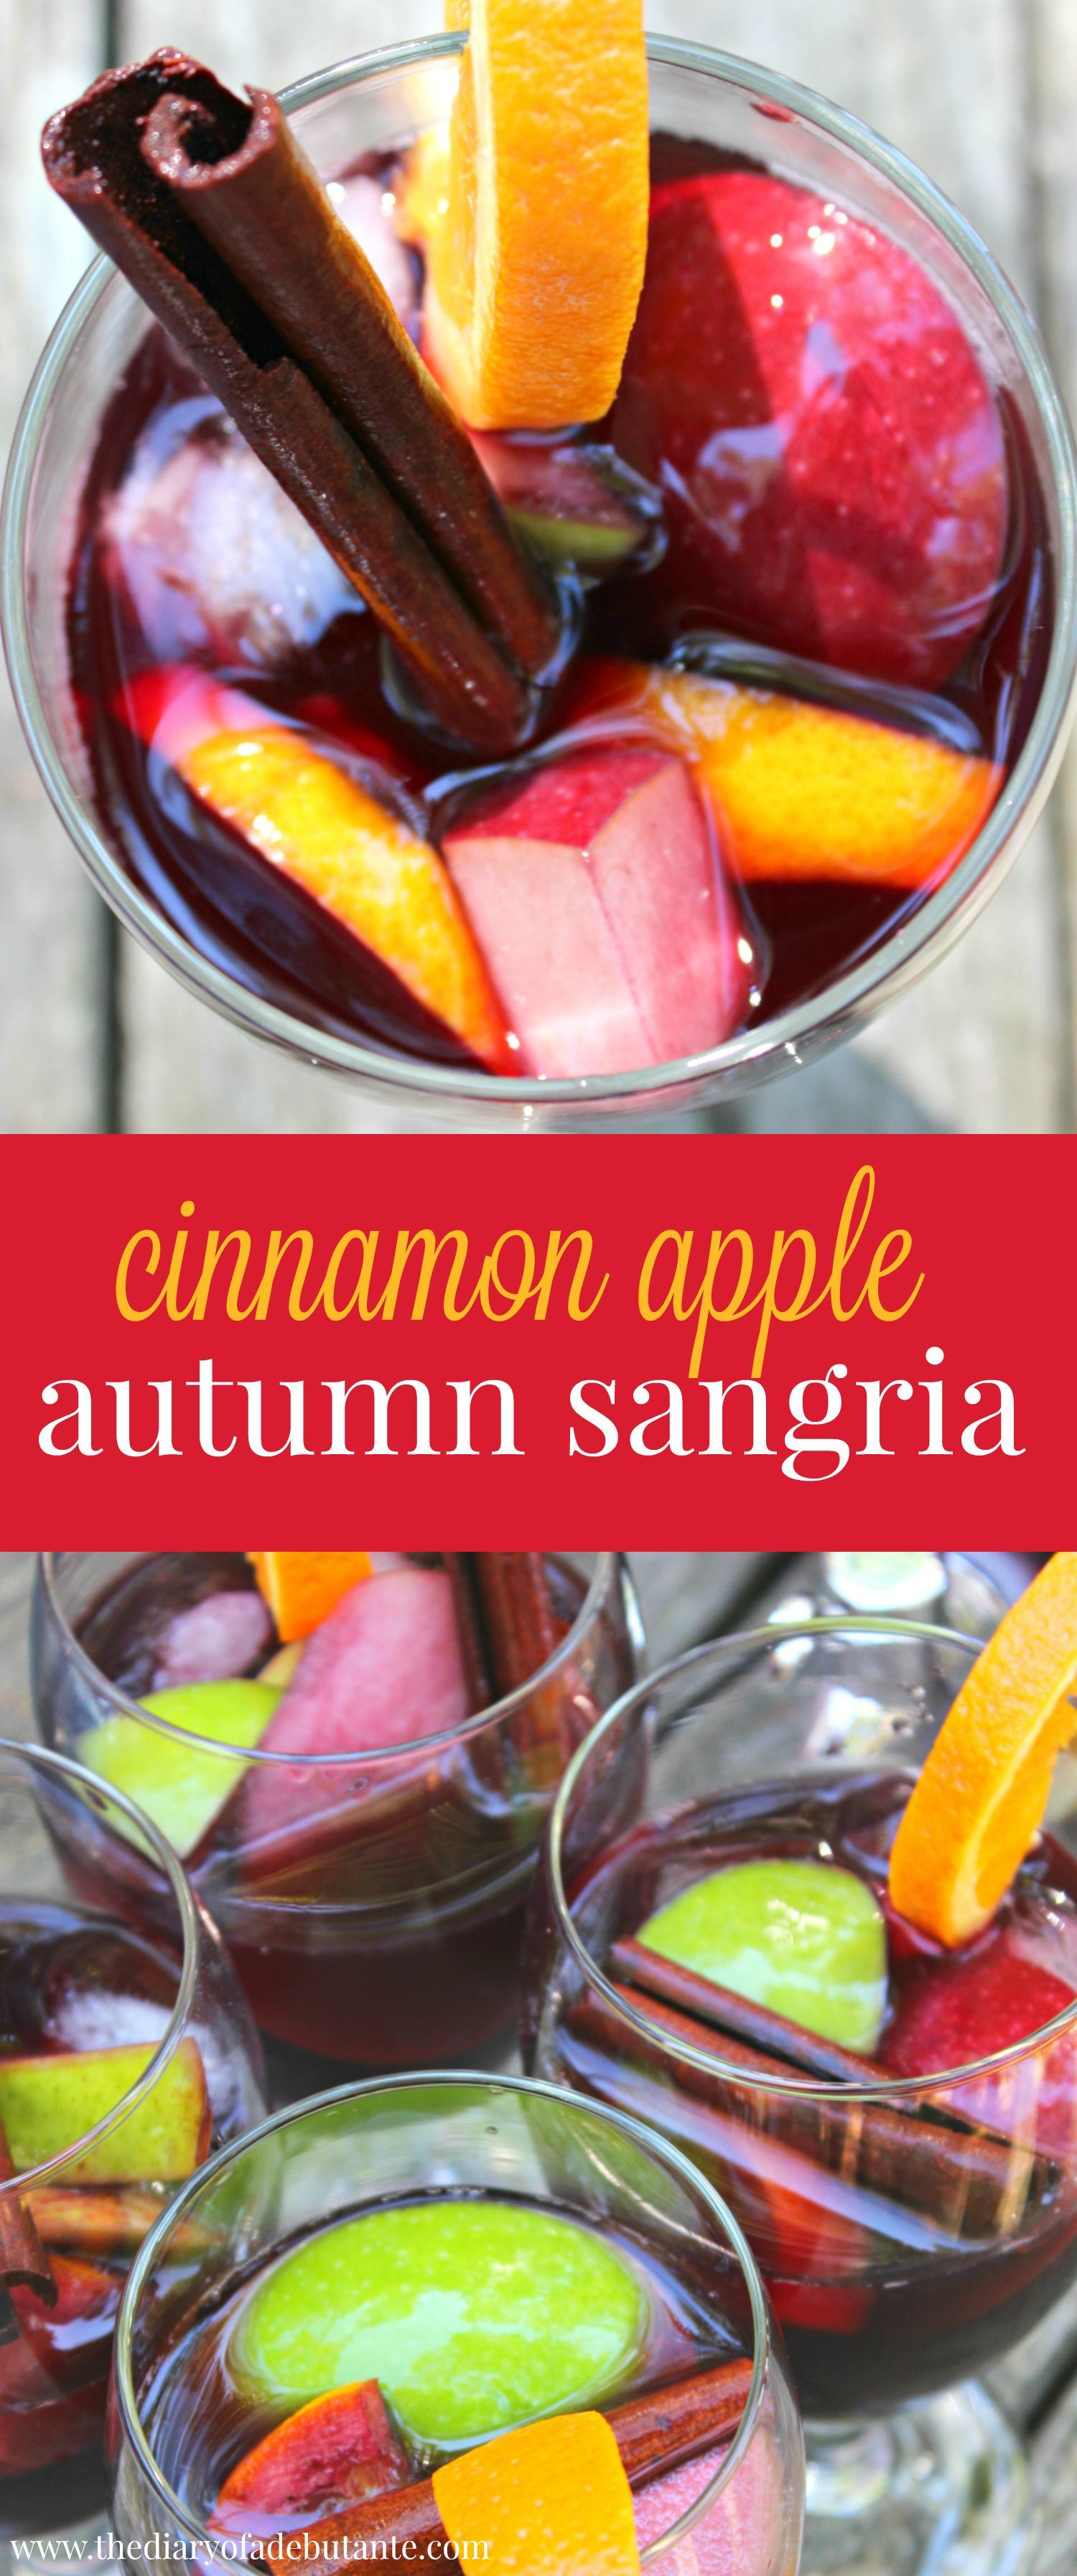 Cinnamon Apple Autumn Sangria Seriously Delicious Has Become One Of My Favorite Cocktail Recipes Cocktail Fall Sangria Recipes Sangria Recipes Fall Sangria